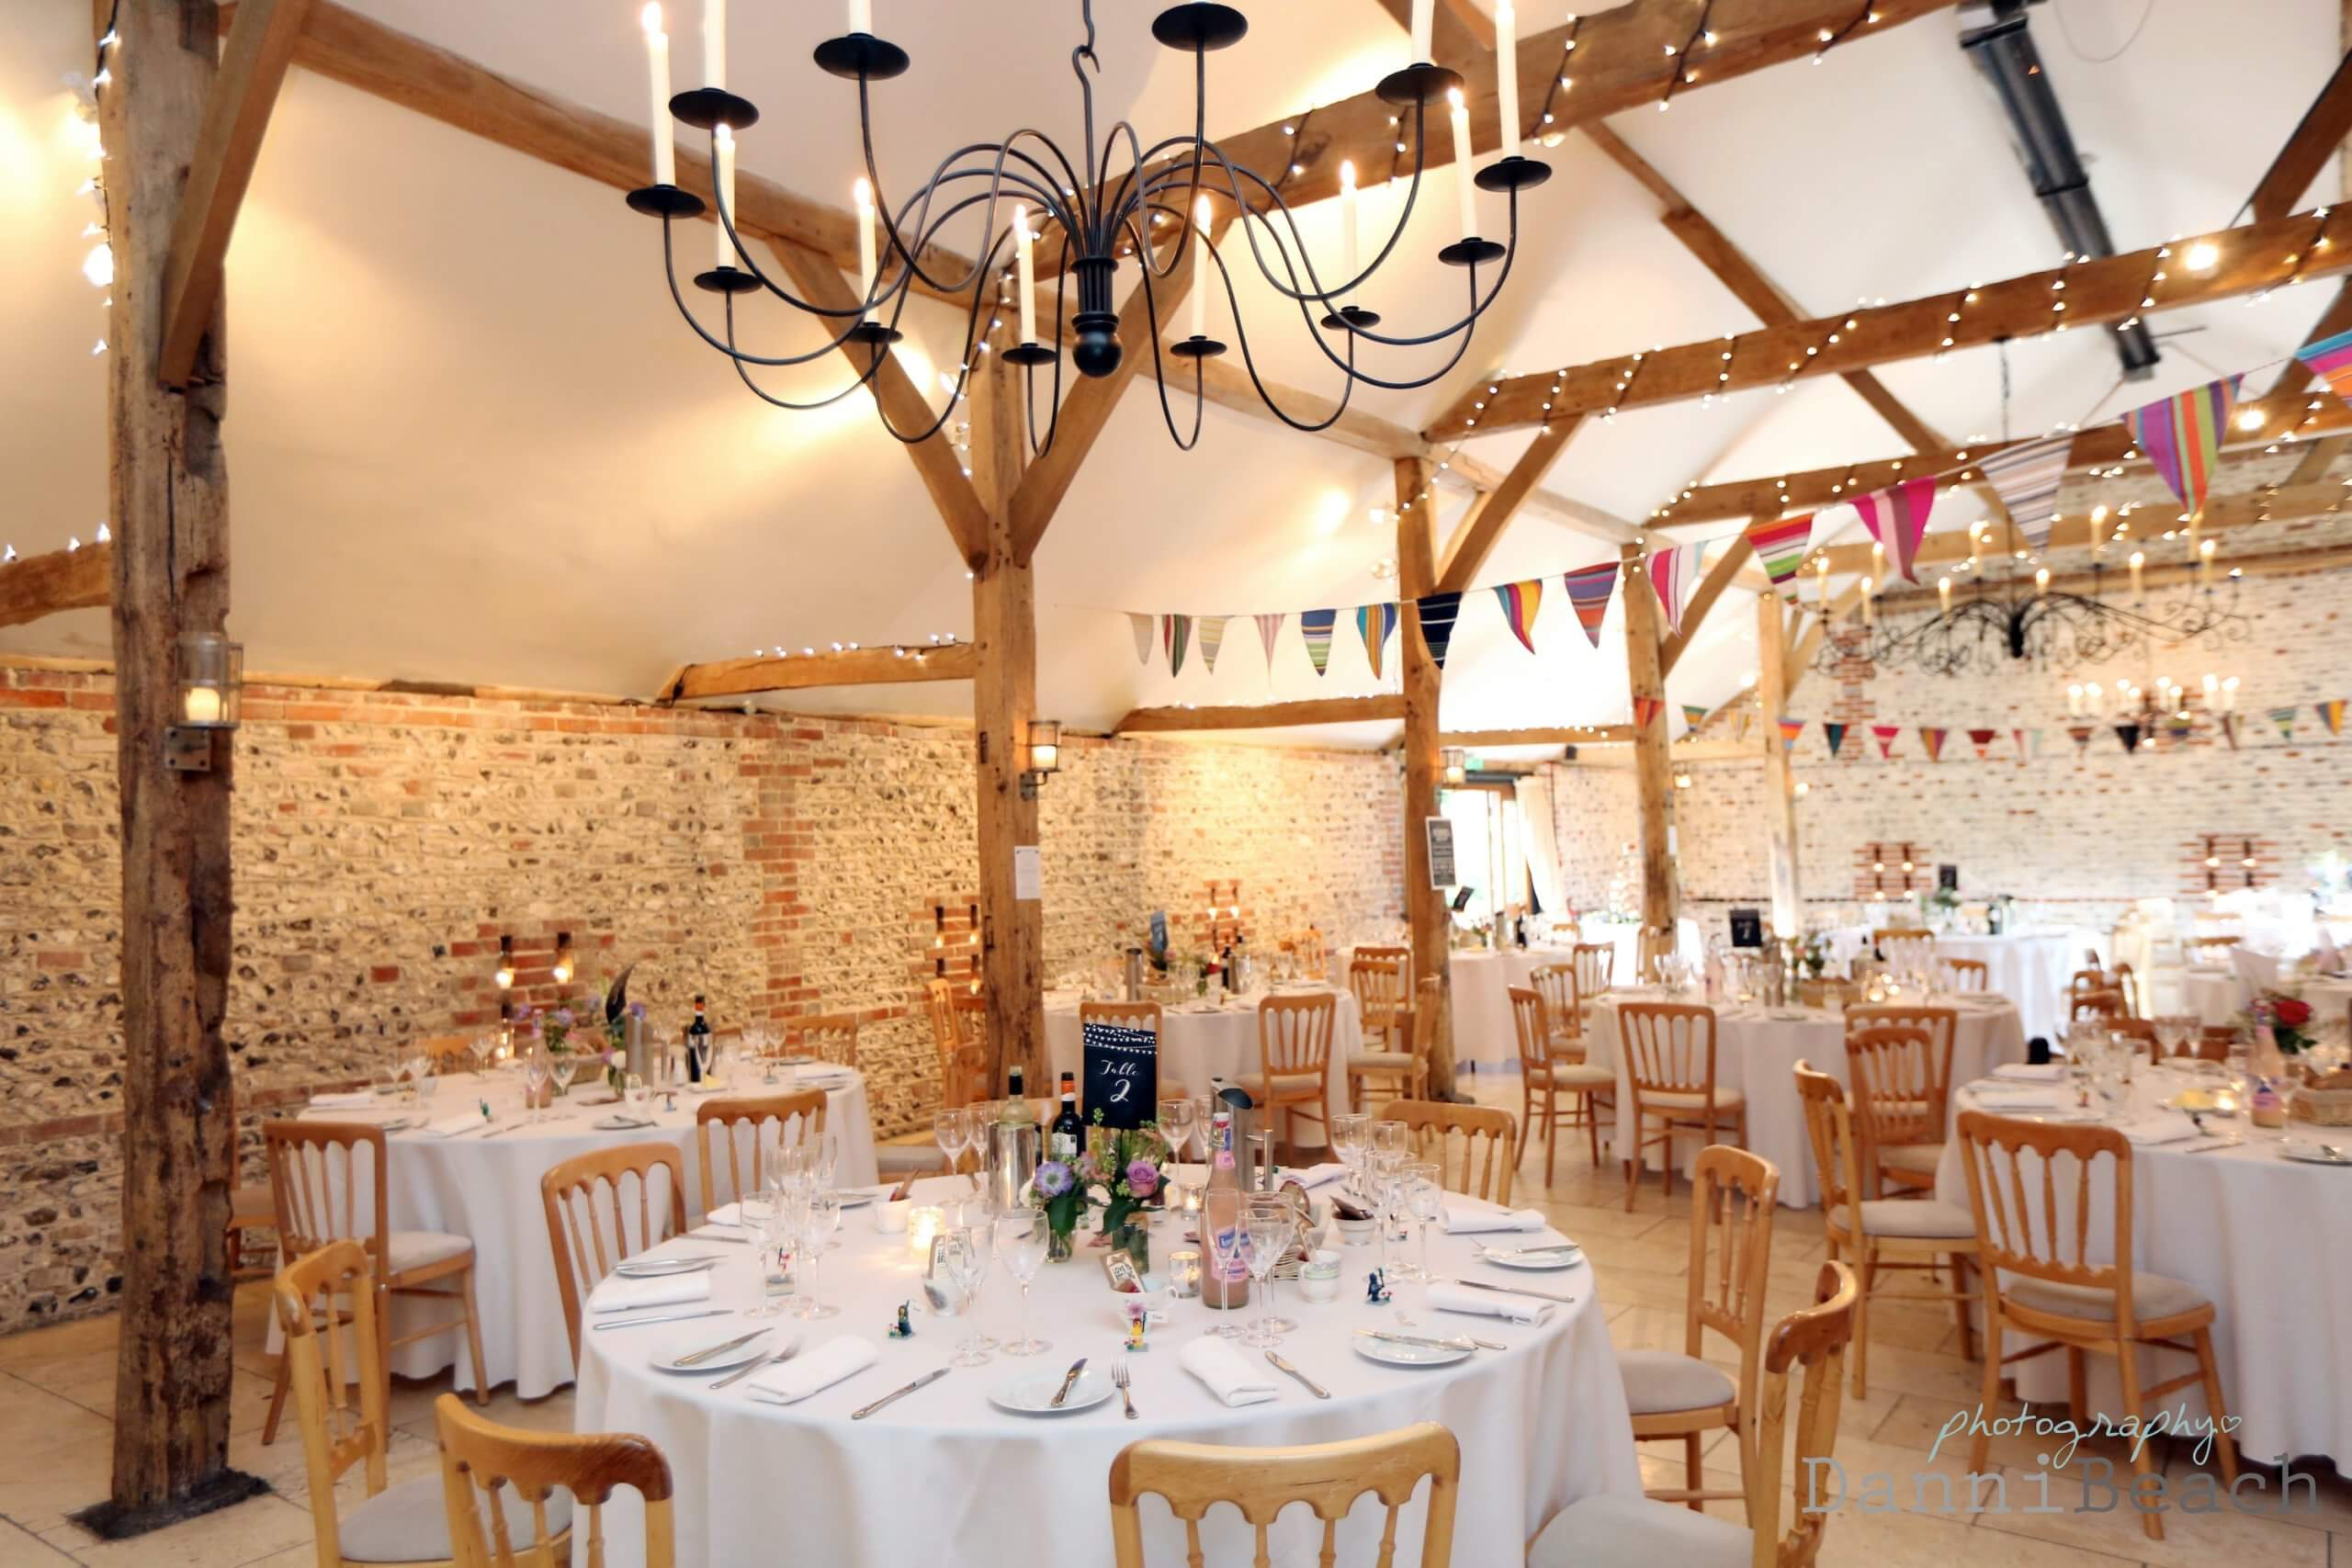 Upwaltham barn wedding breakfast